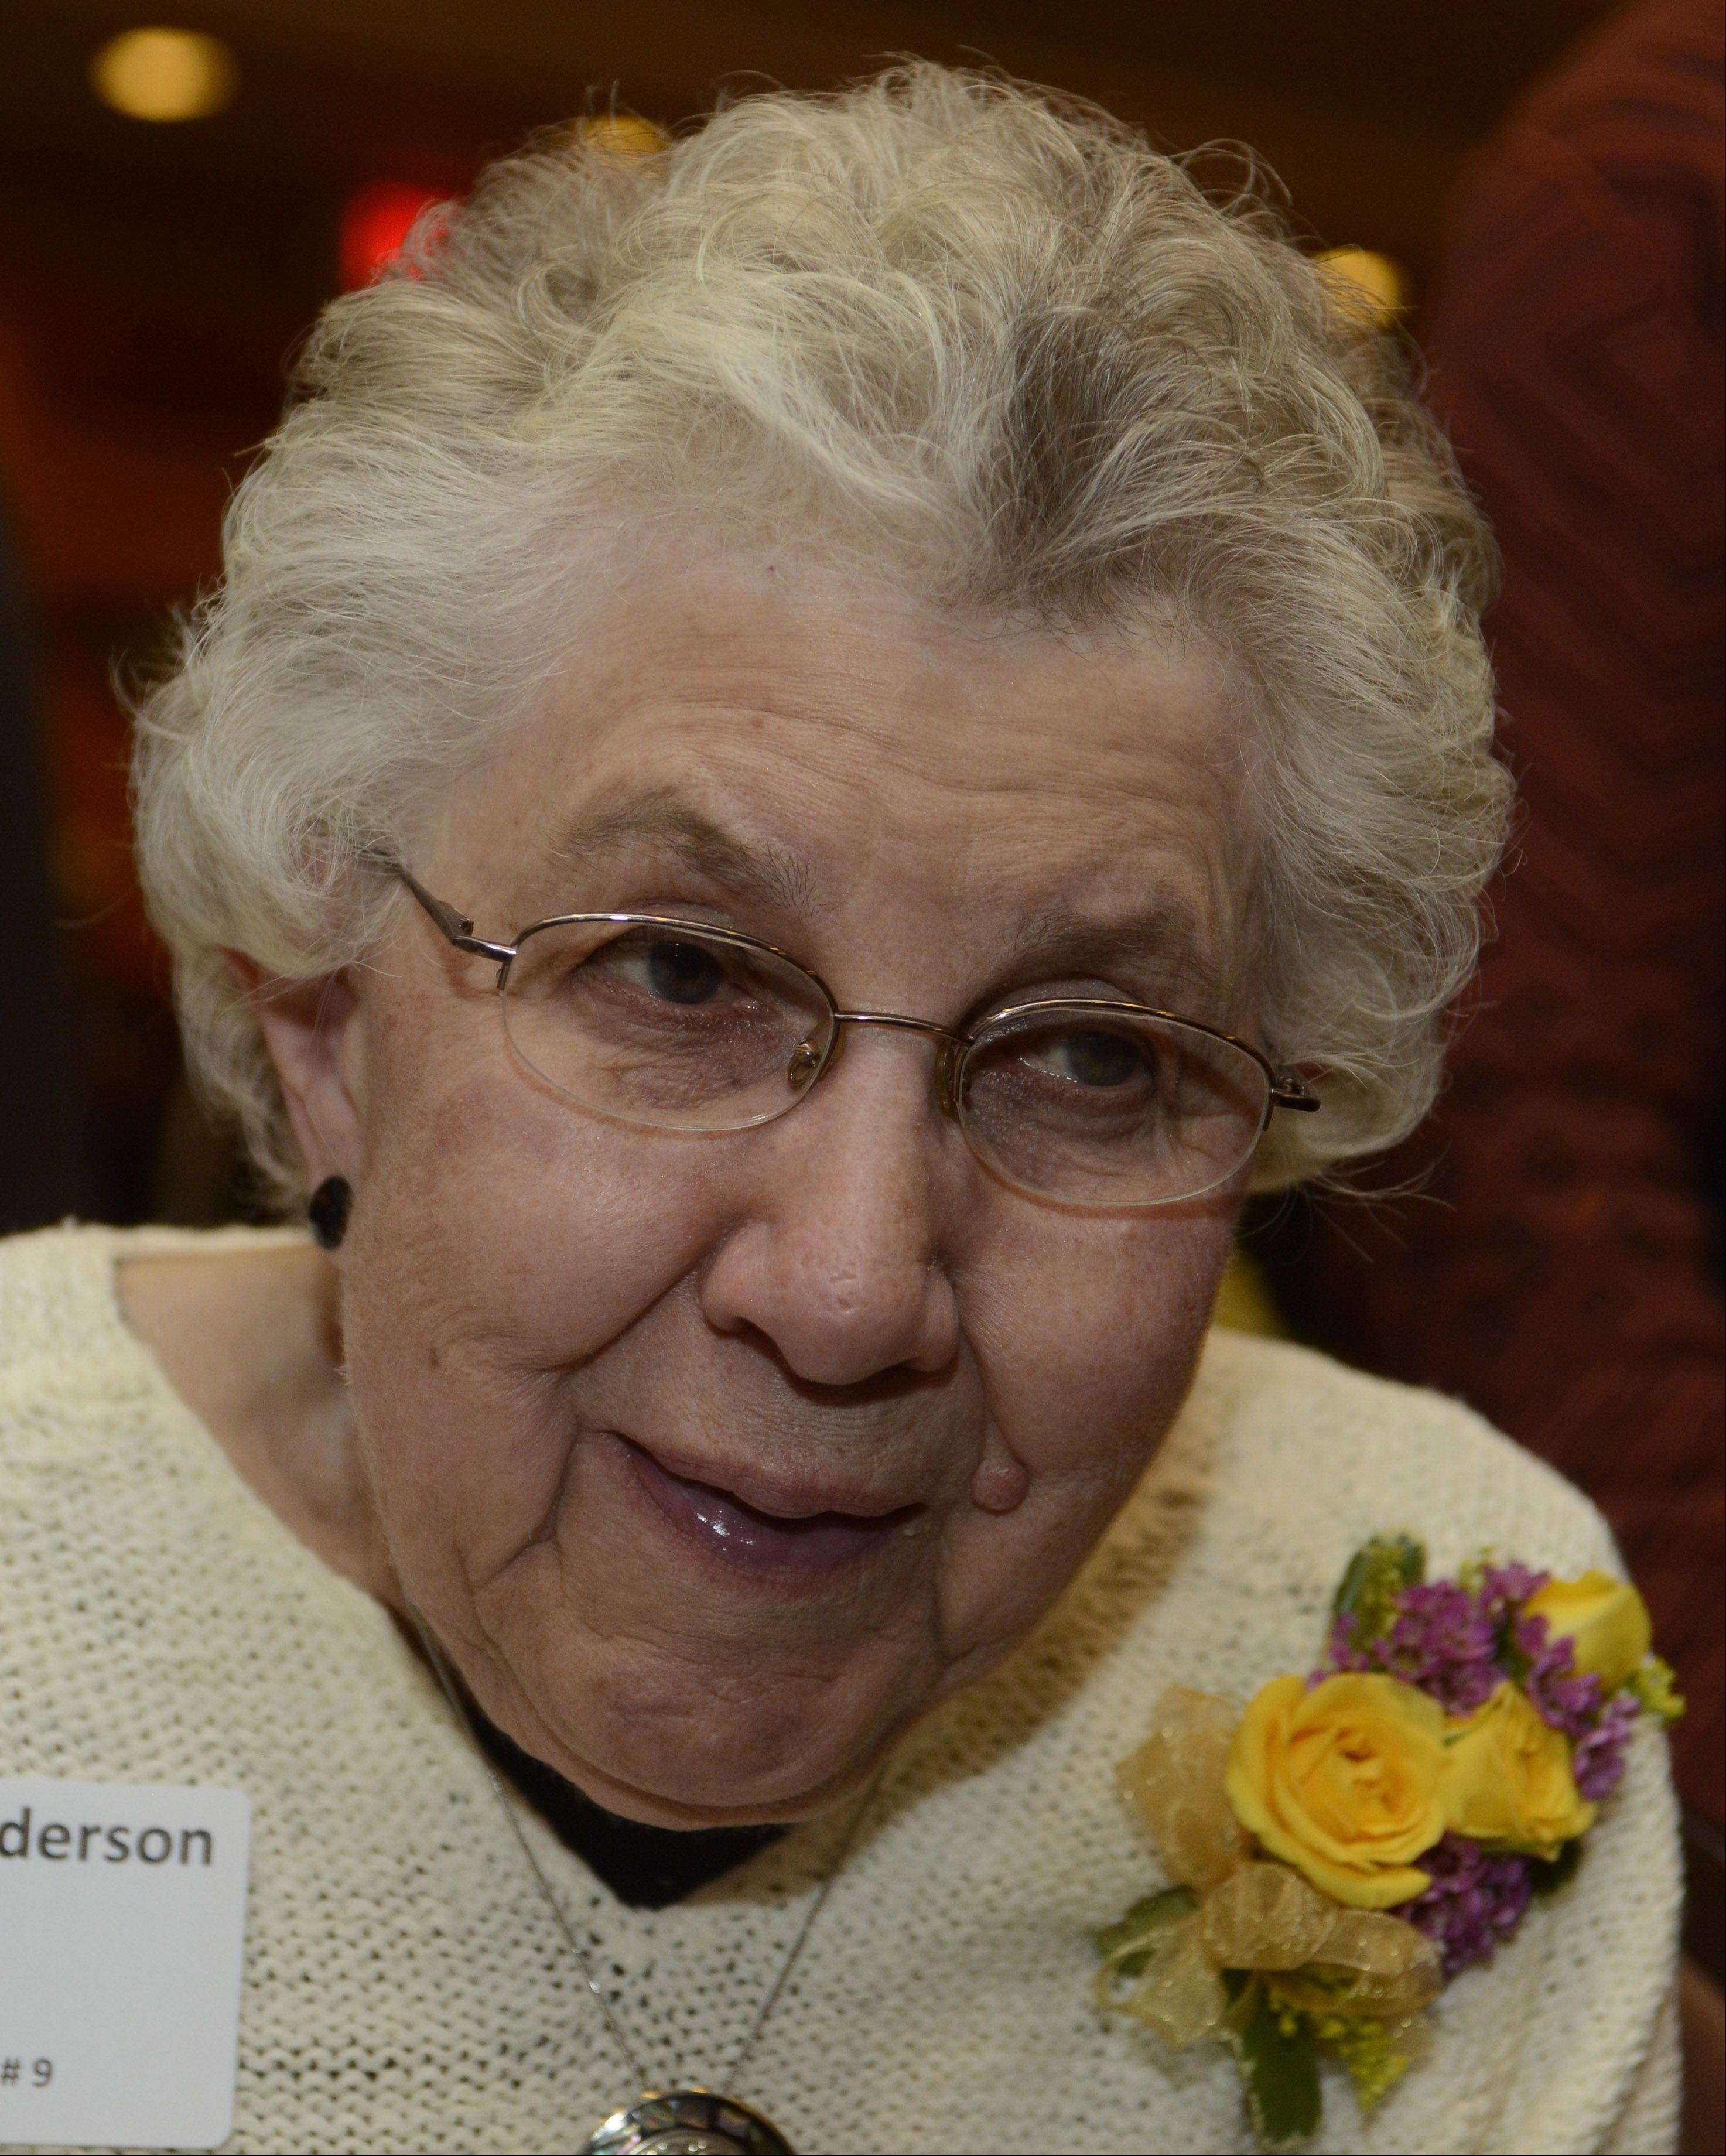 JOE LEWNARD/jlewnard@dailyherald.comLois Anderson received the Best Neighbor Award during Arlington Heights' 15th annual Hearts of Gold dinner Saturday night. Anderson was recognized for helping homebound seniors and assisting at a local homeless shelter.